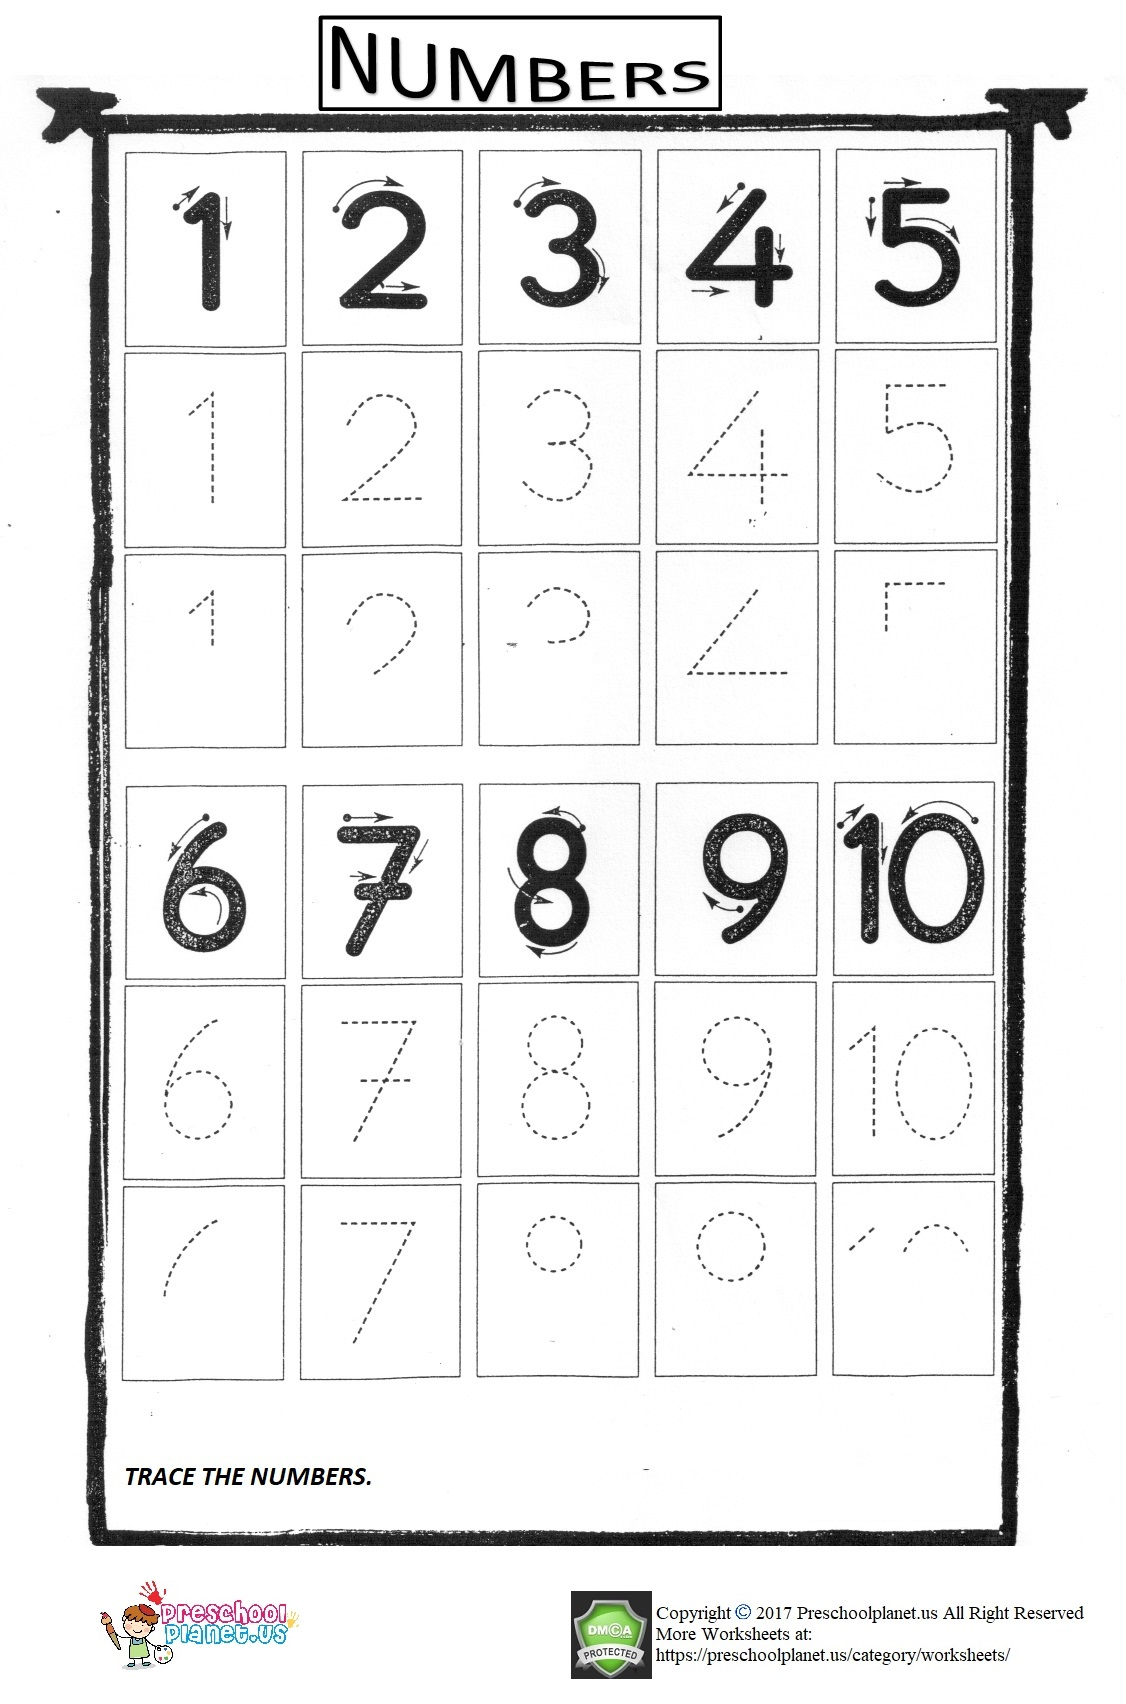 Number Trace Worksheet For Kids 1 10 Preschoolplanet